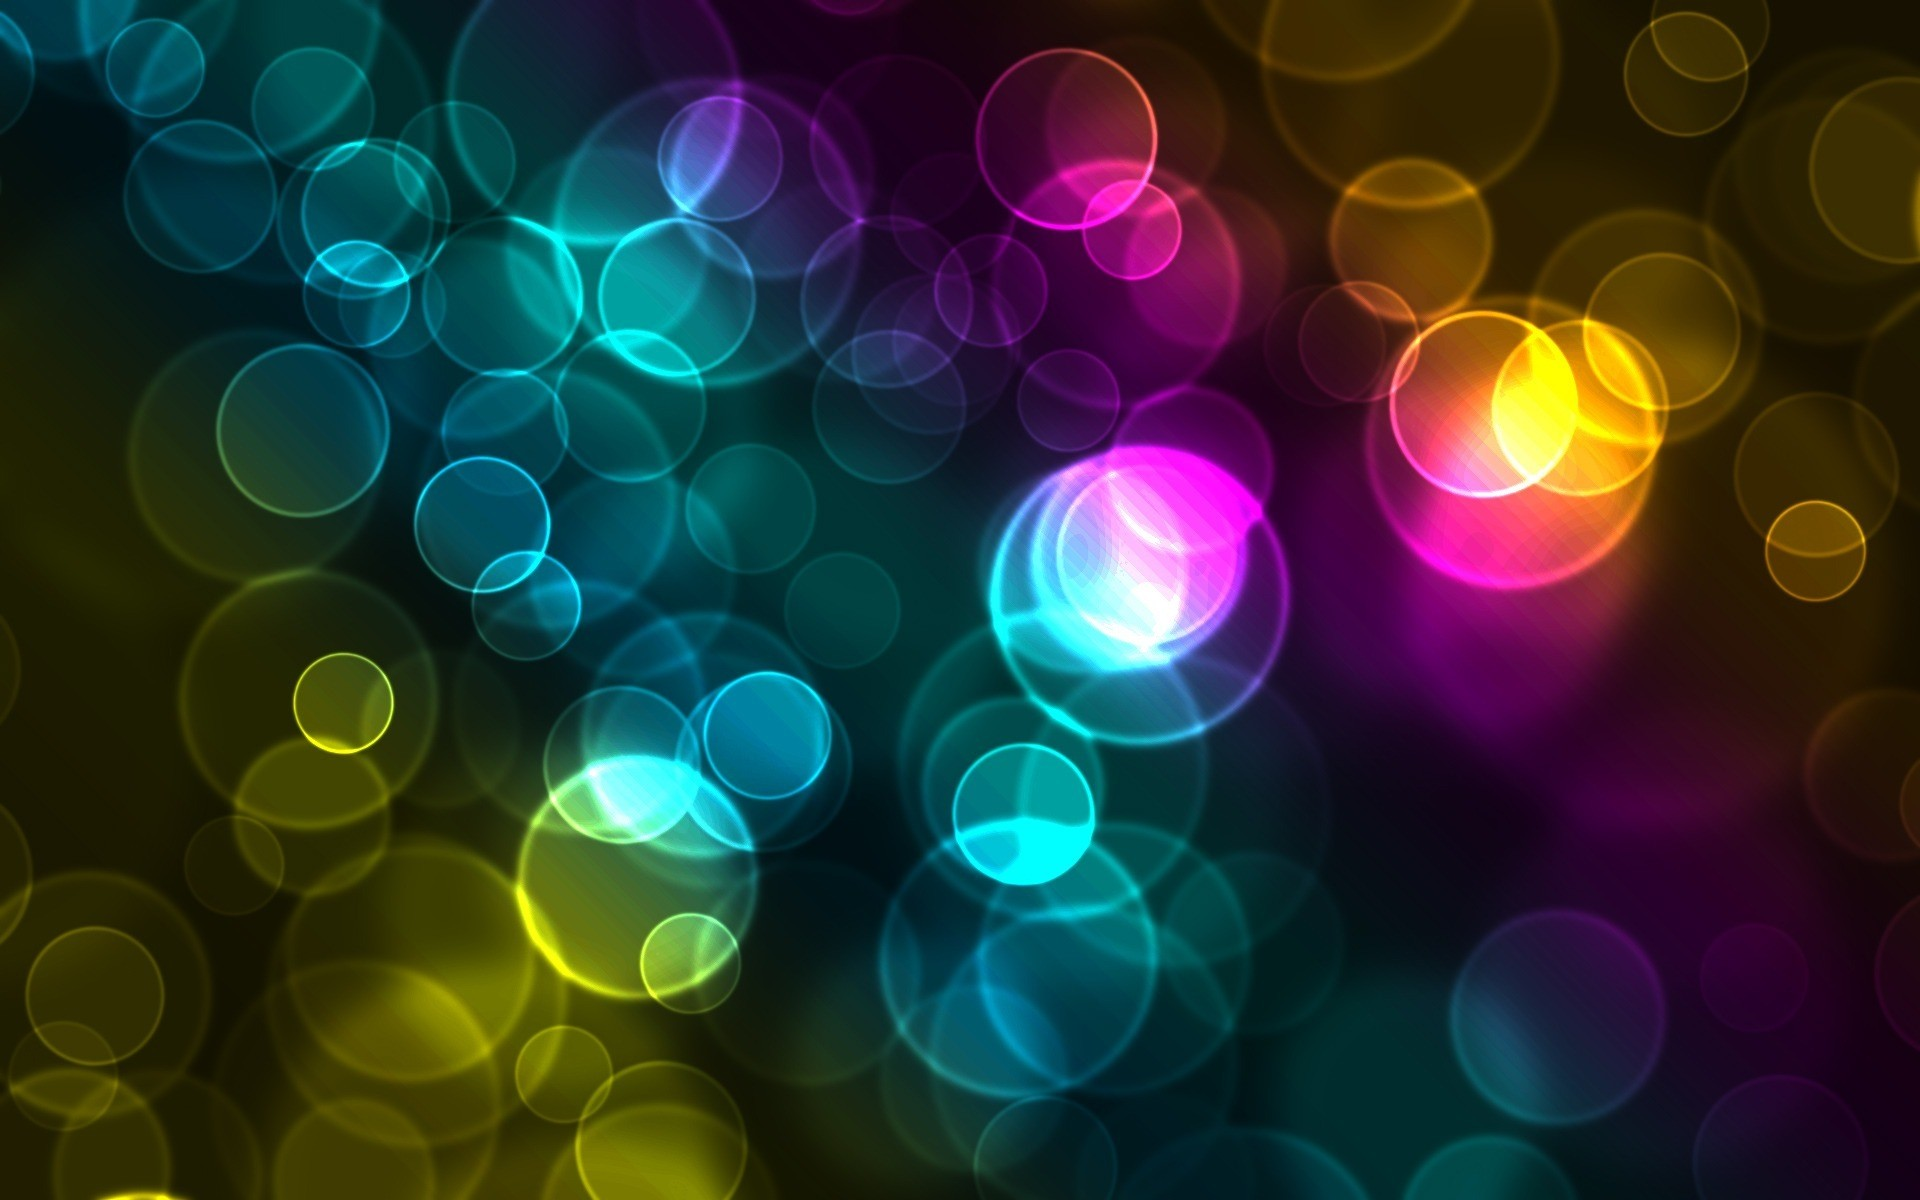 1920x1200 Image detail for -Christmas Wallpaper, Christmas Lights, Wallpaper,  Background